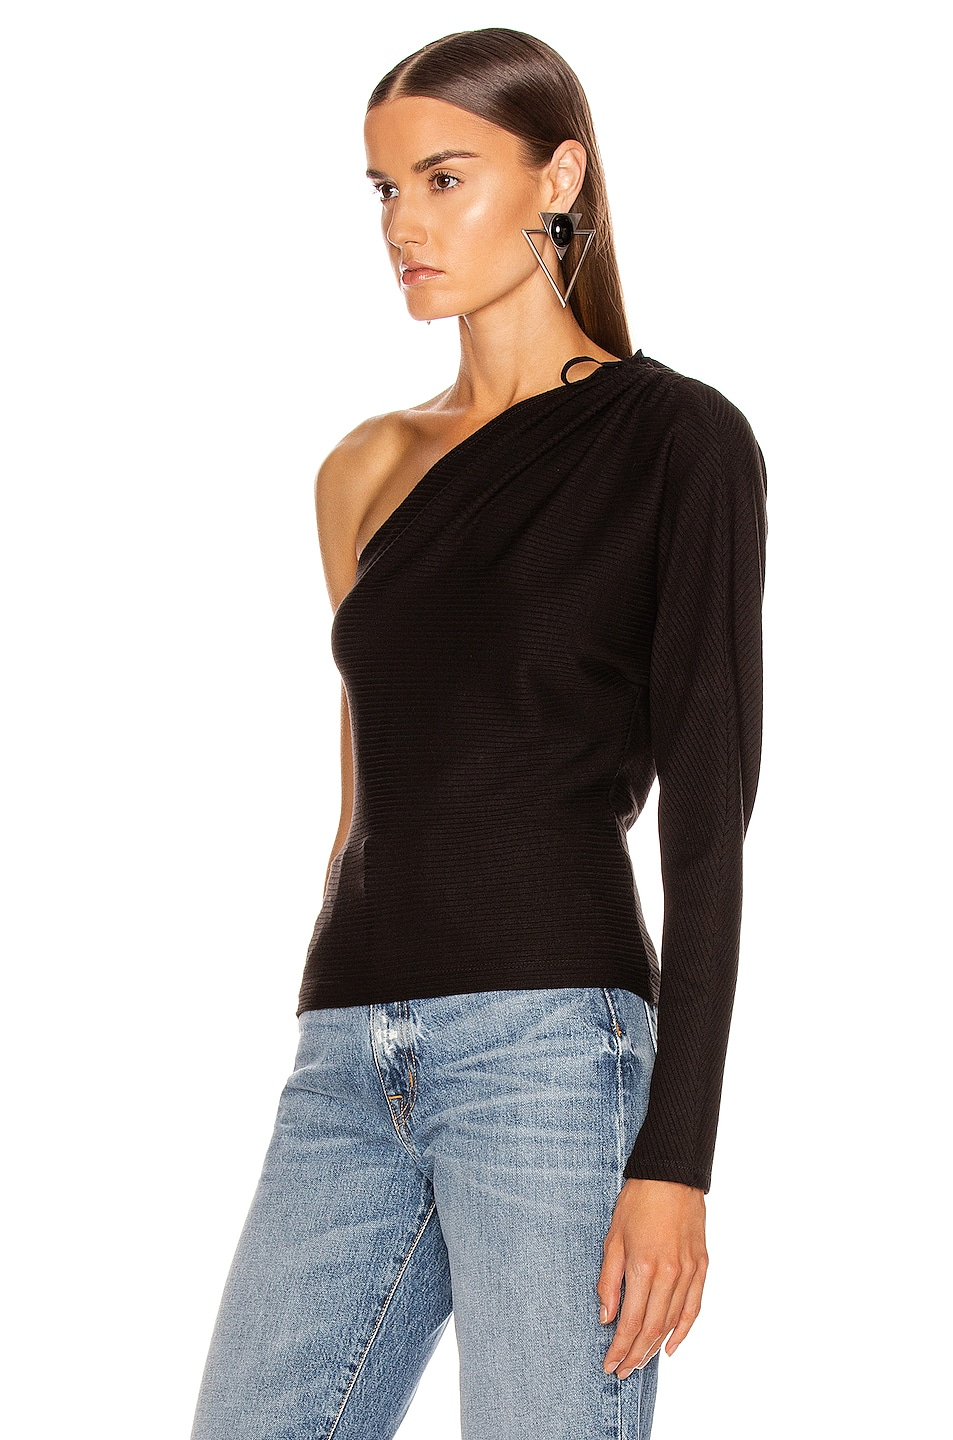 Image 3 of The Range Alloy Rib One Shoulder Top in Black